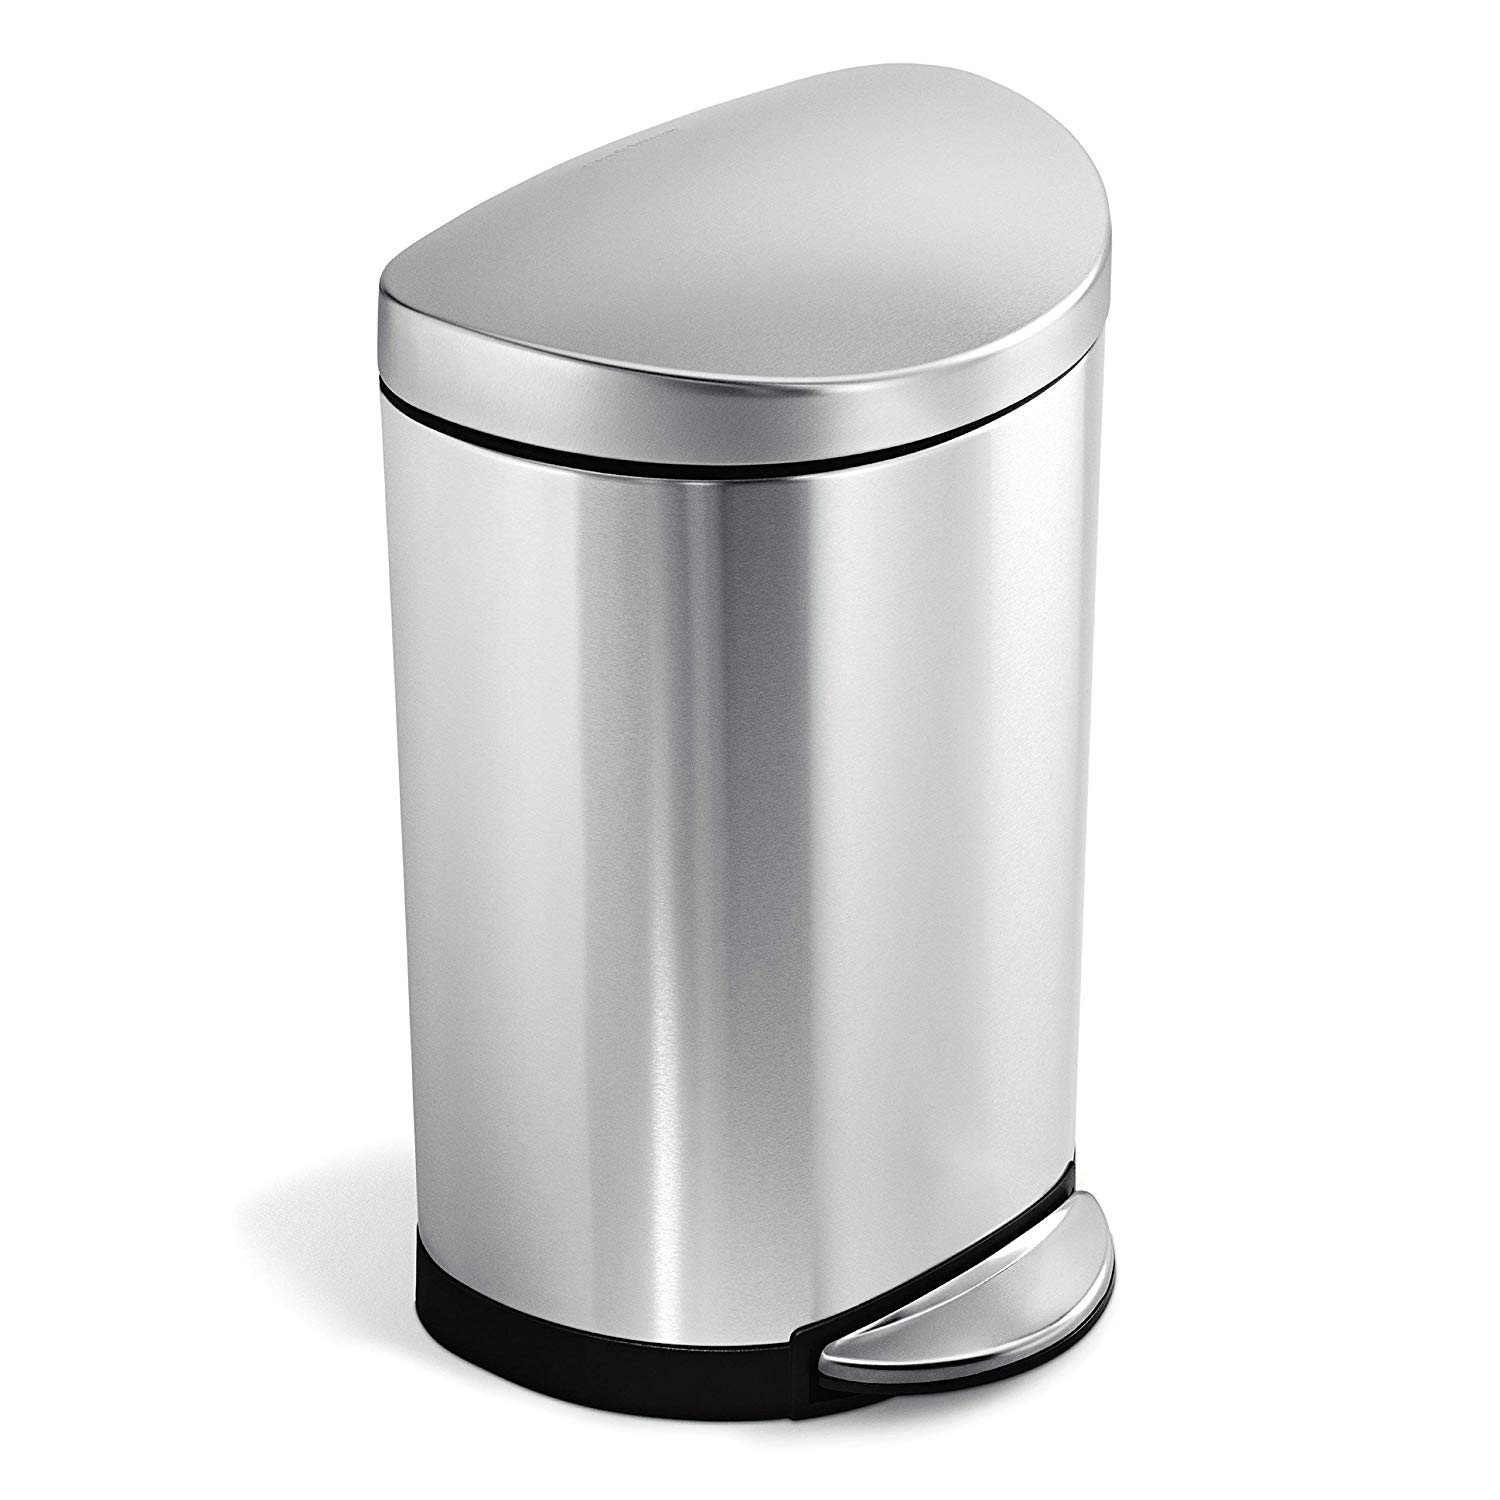 Stainless Steel Semi-Round Waste Can - 2.6 Gallon